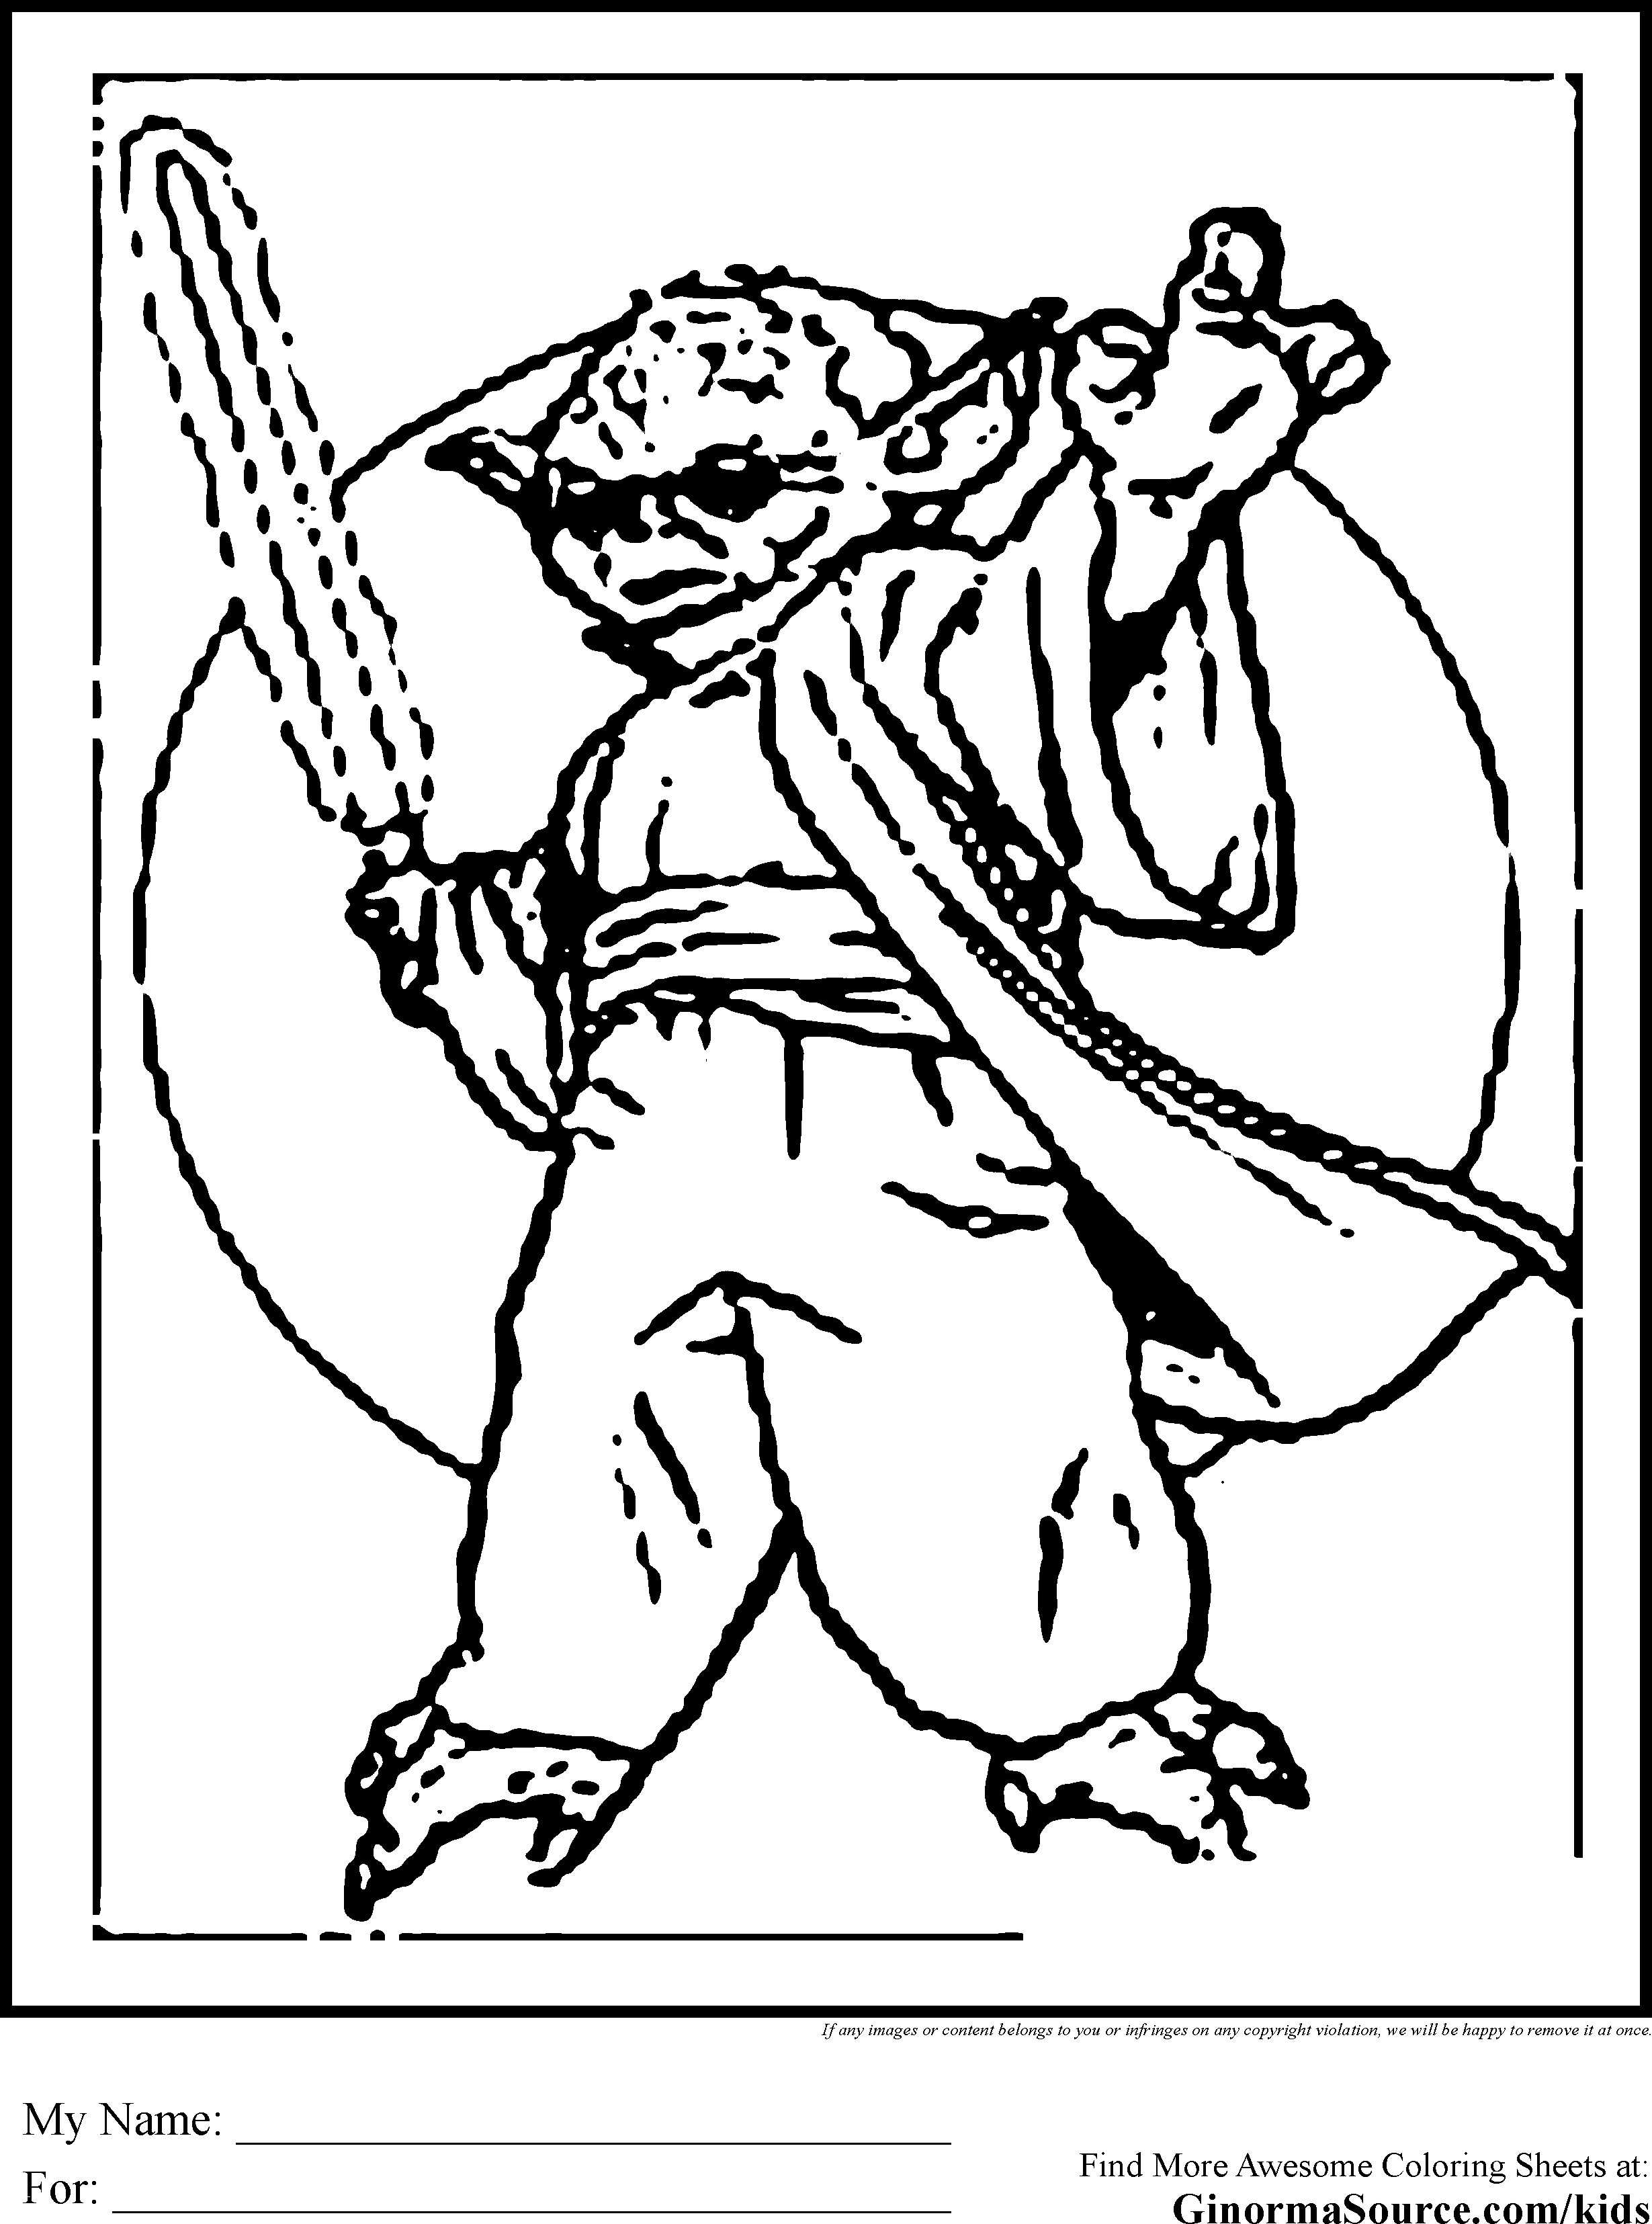 Stormtrooper Coloring Page Stormtrooper Coloring Page Luxury Star Wars Printable For Storm